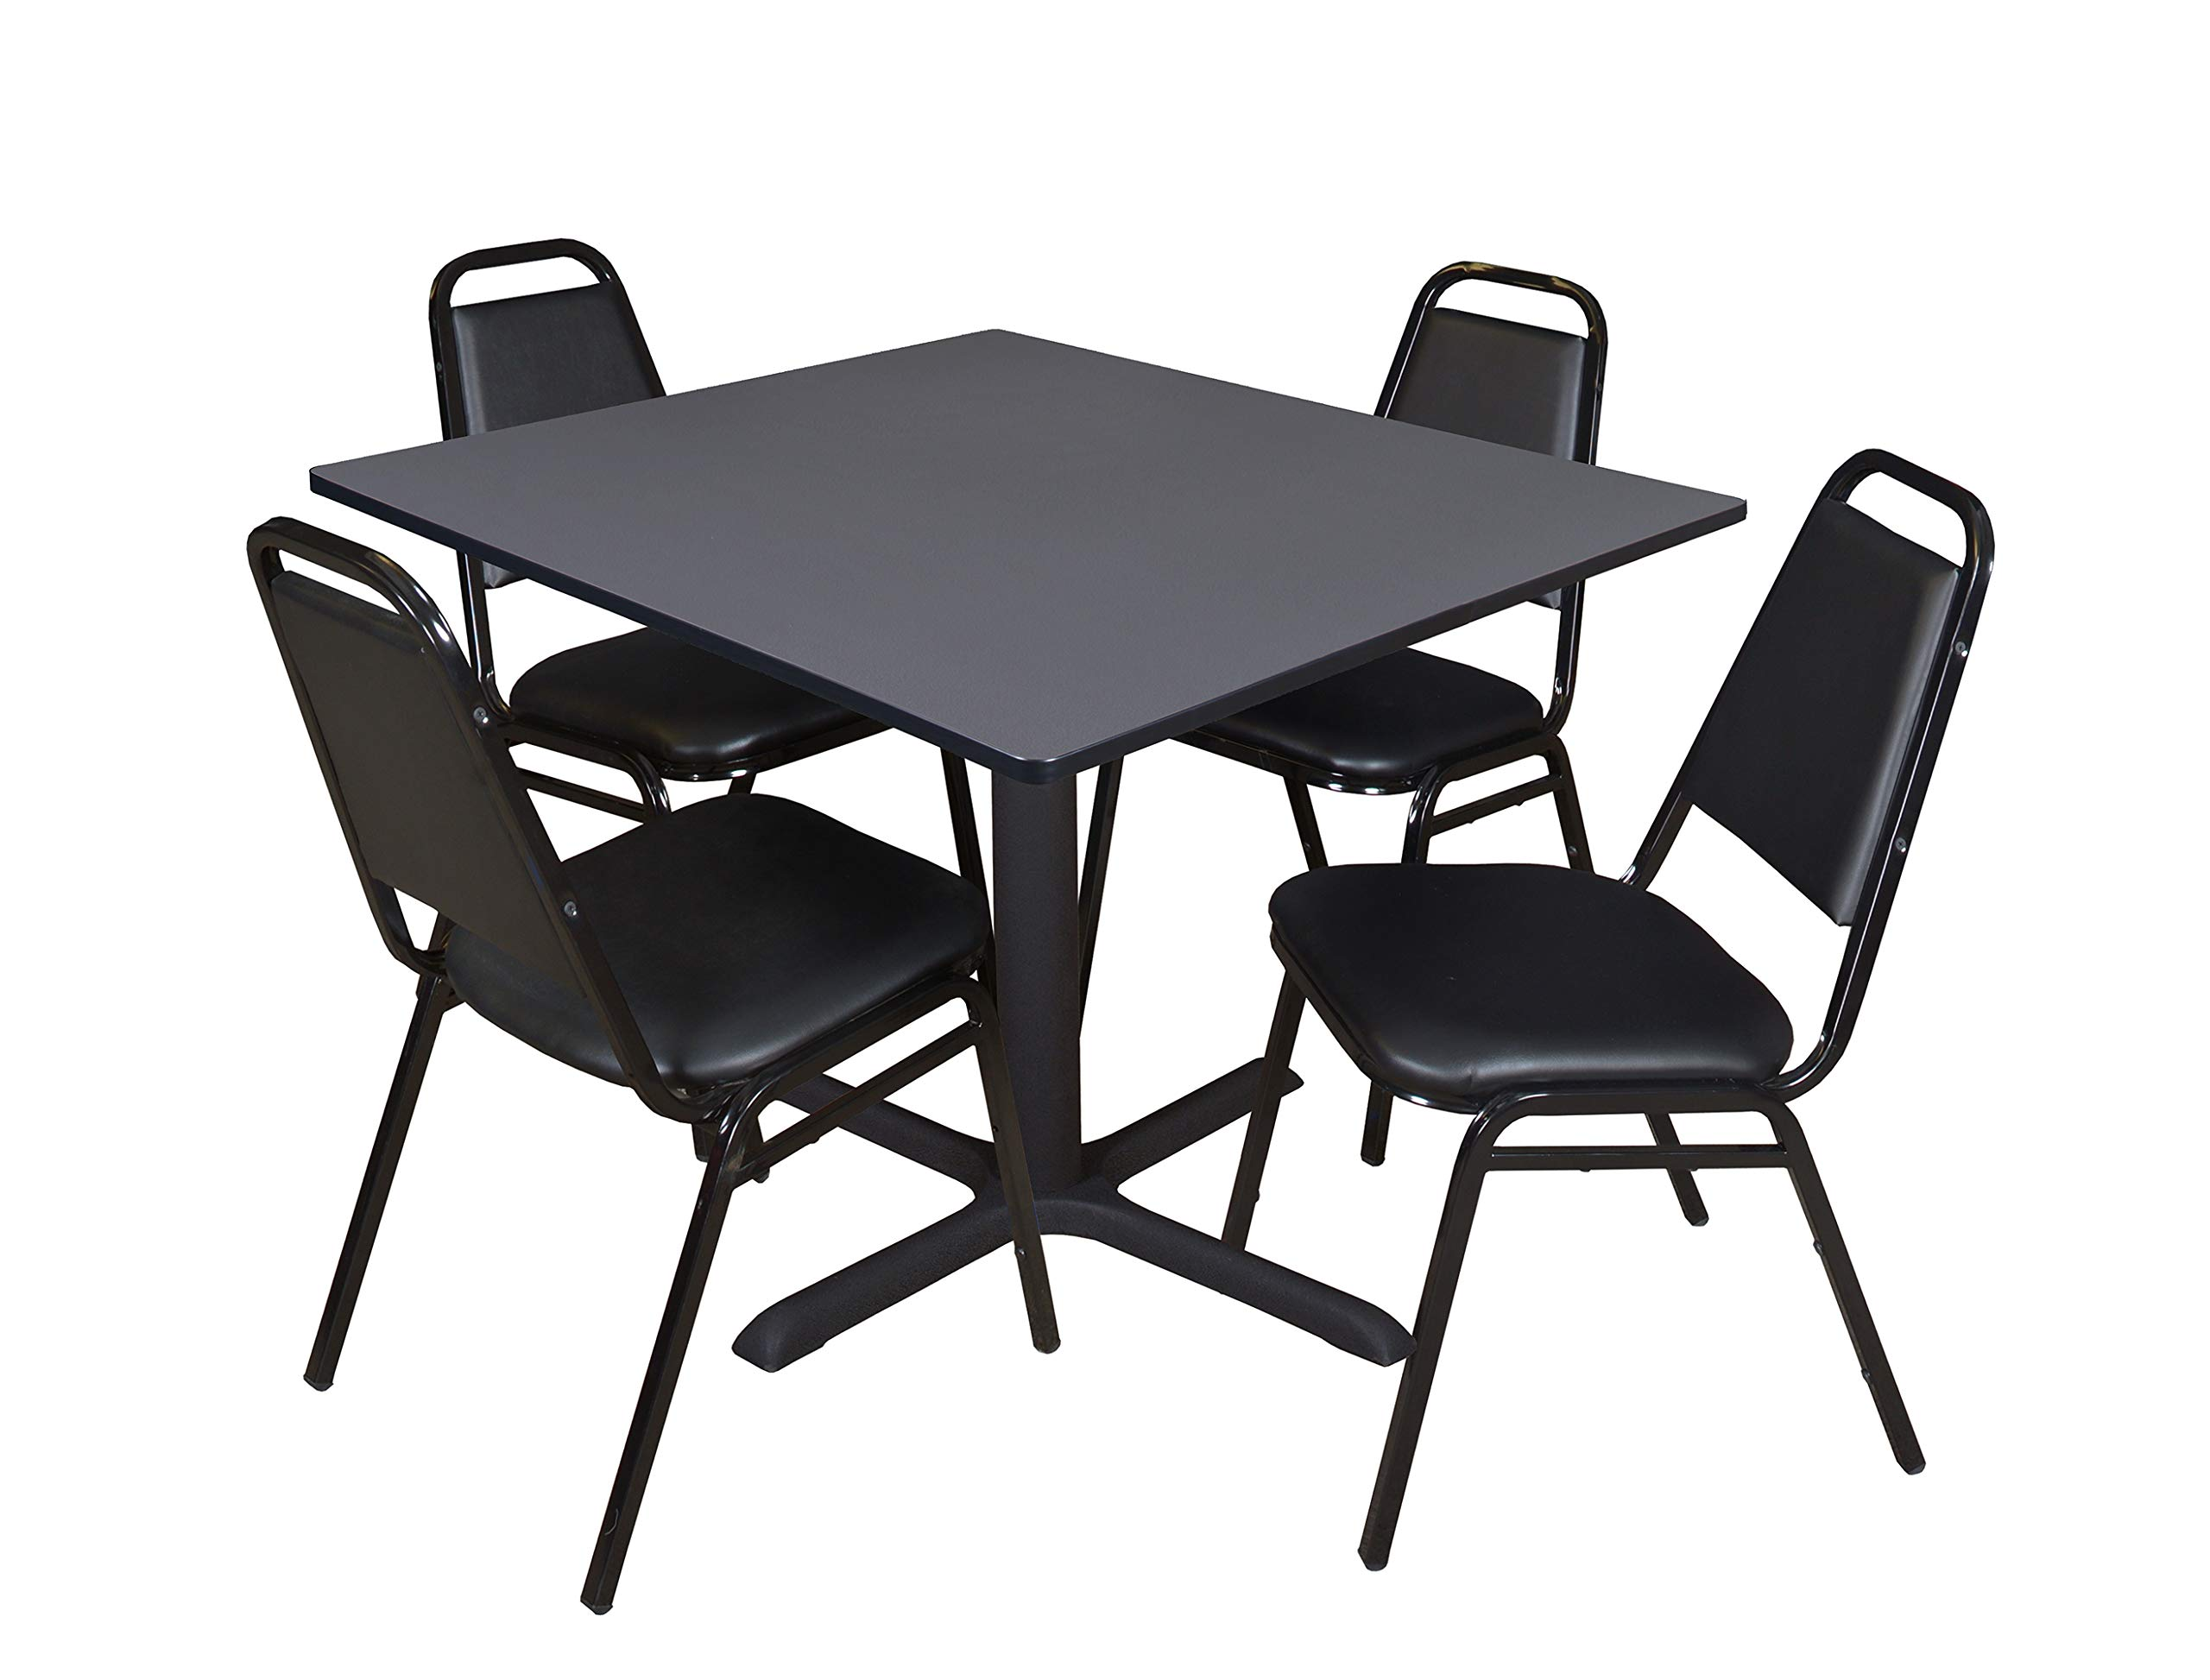 Cain 48'' Square Breakroom Table- Grey & 4 Restaurant Stack Chairs- Black by Regency Seating